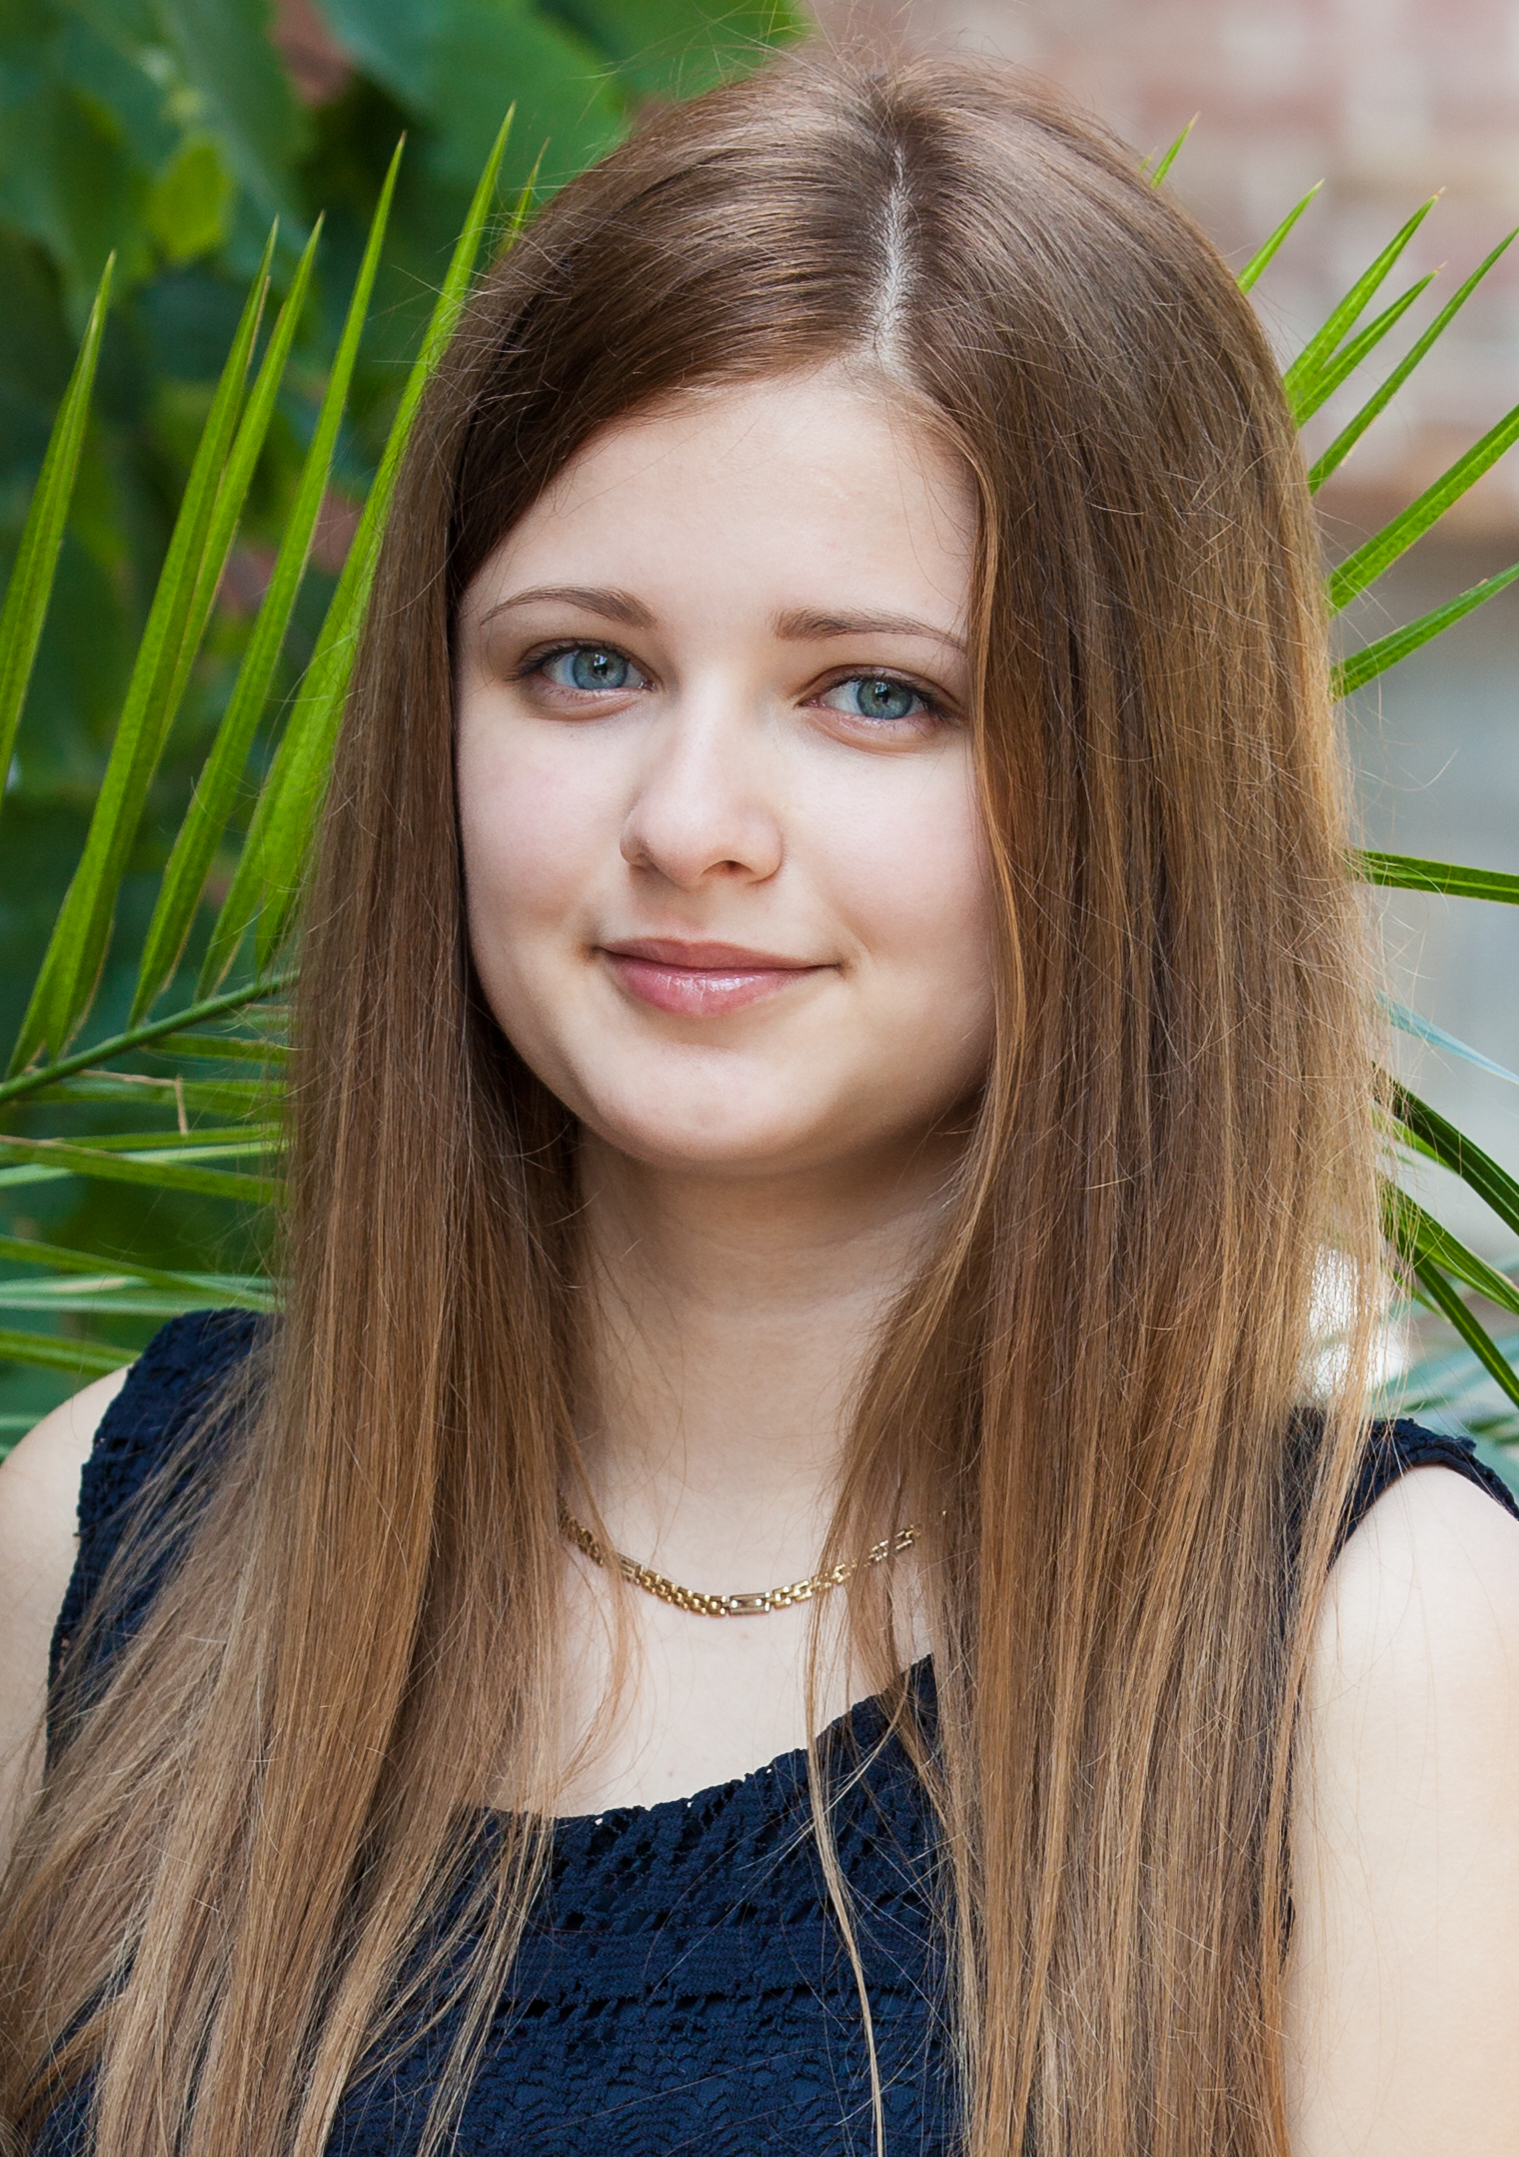 a cute young long-haired girl photographed in June 2014, picture 1/2